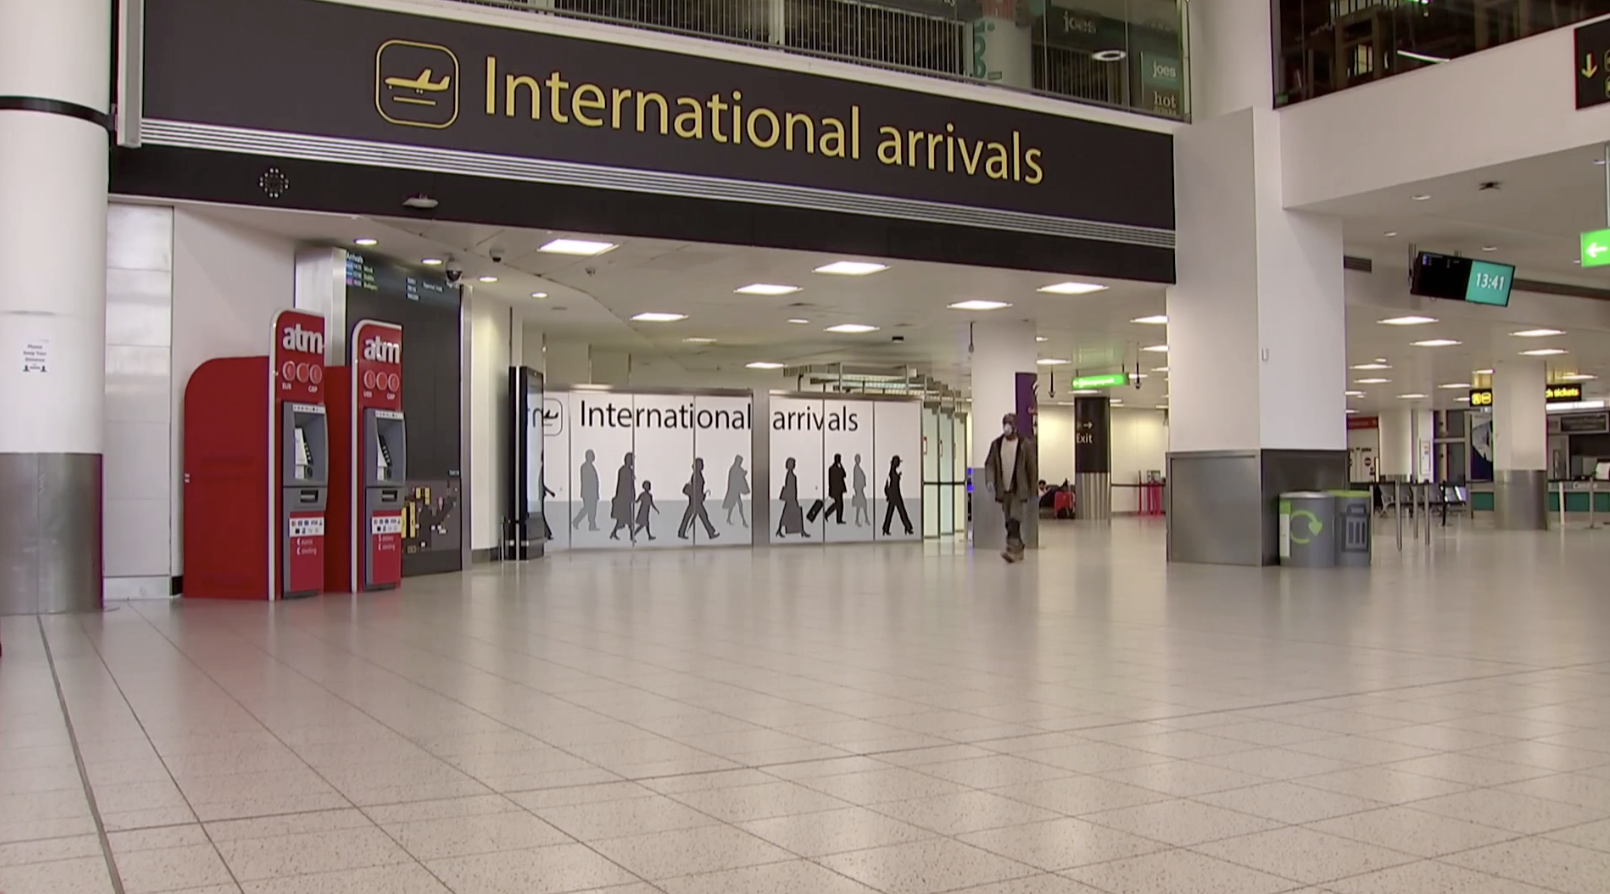 14-day quarantine for people arriving into UK - channel 4